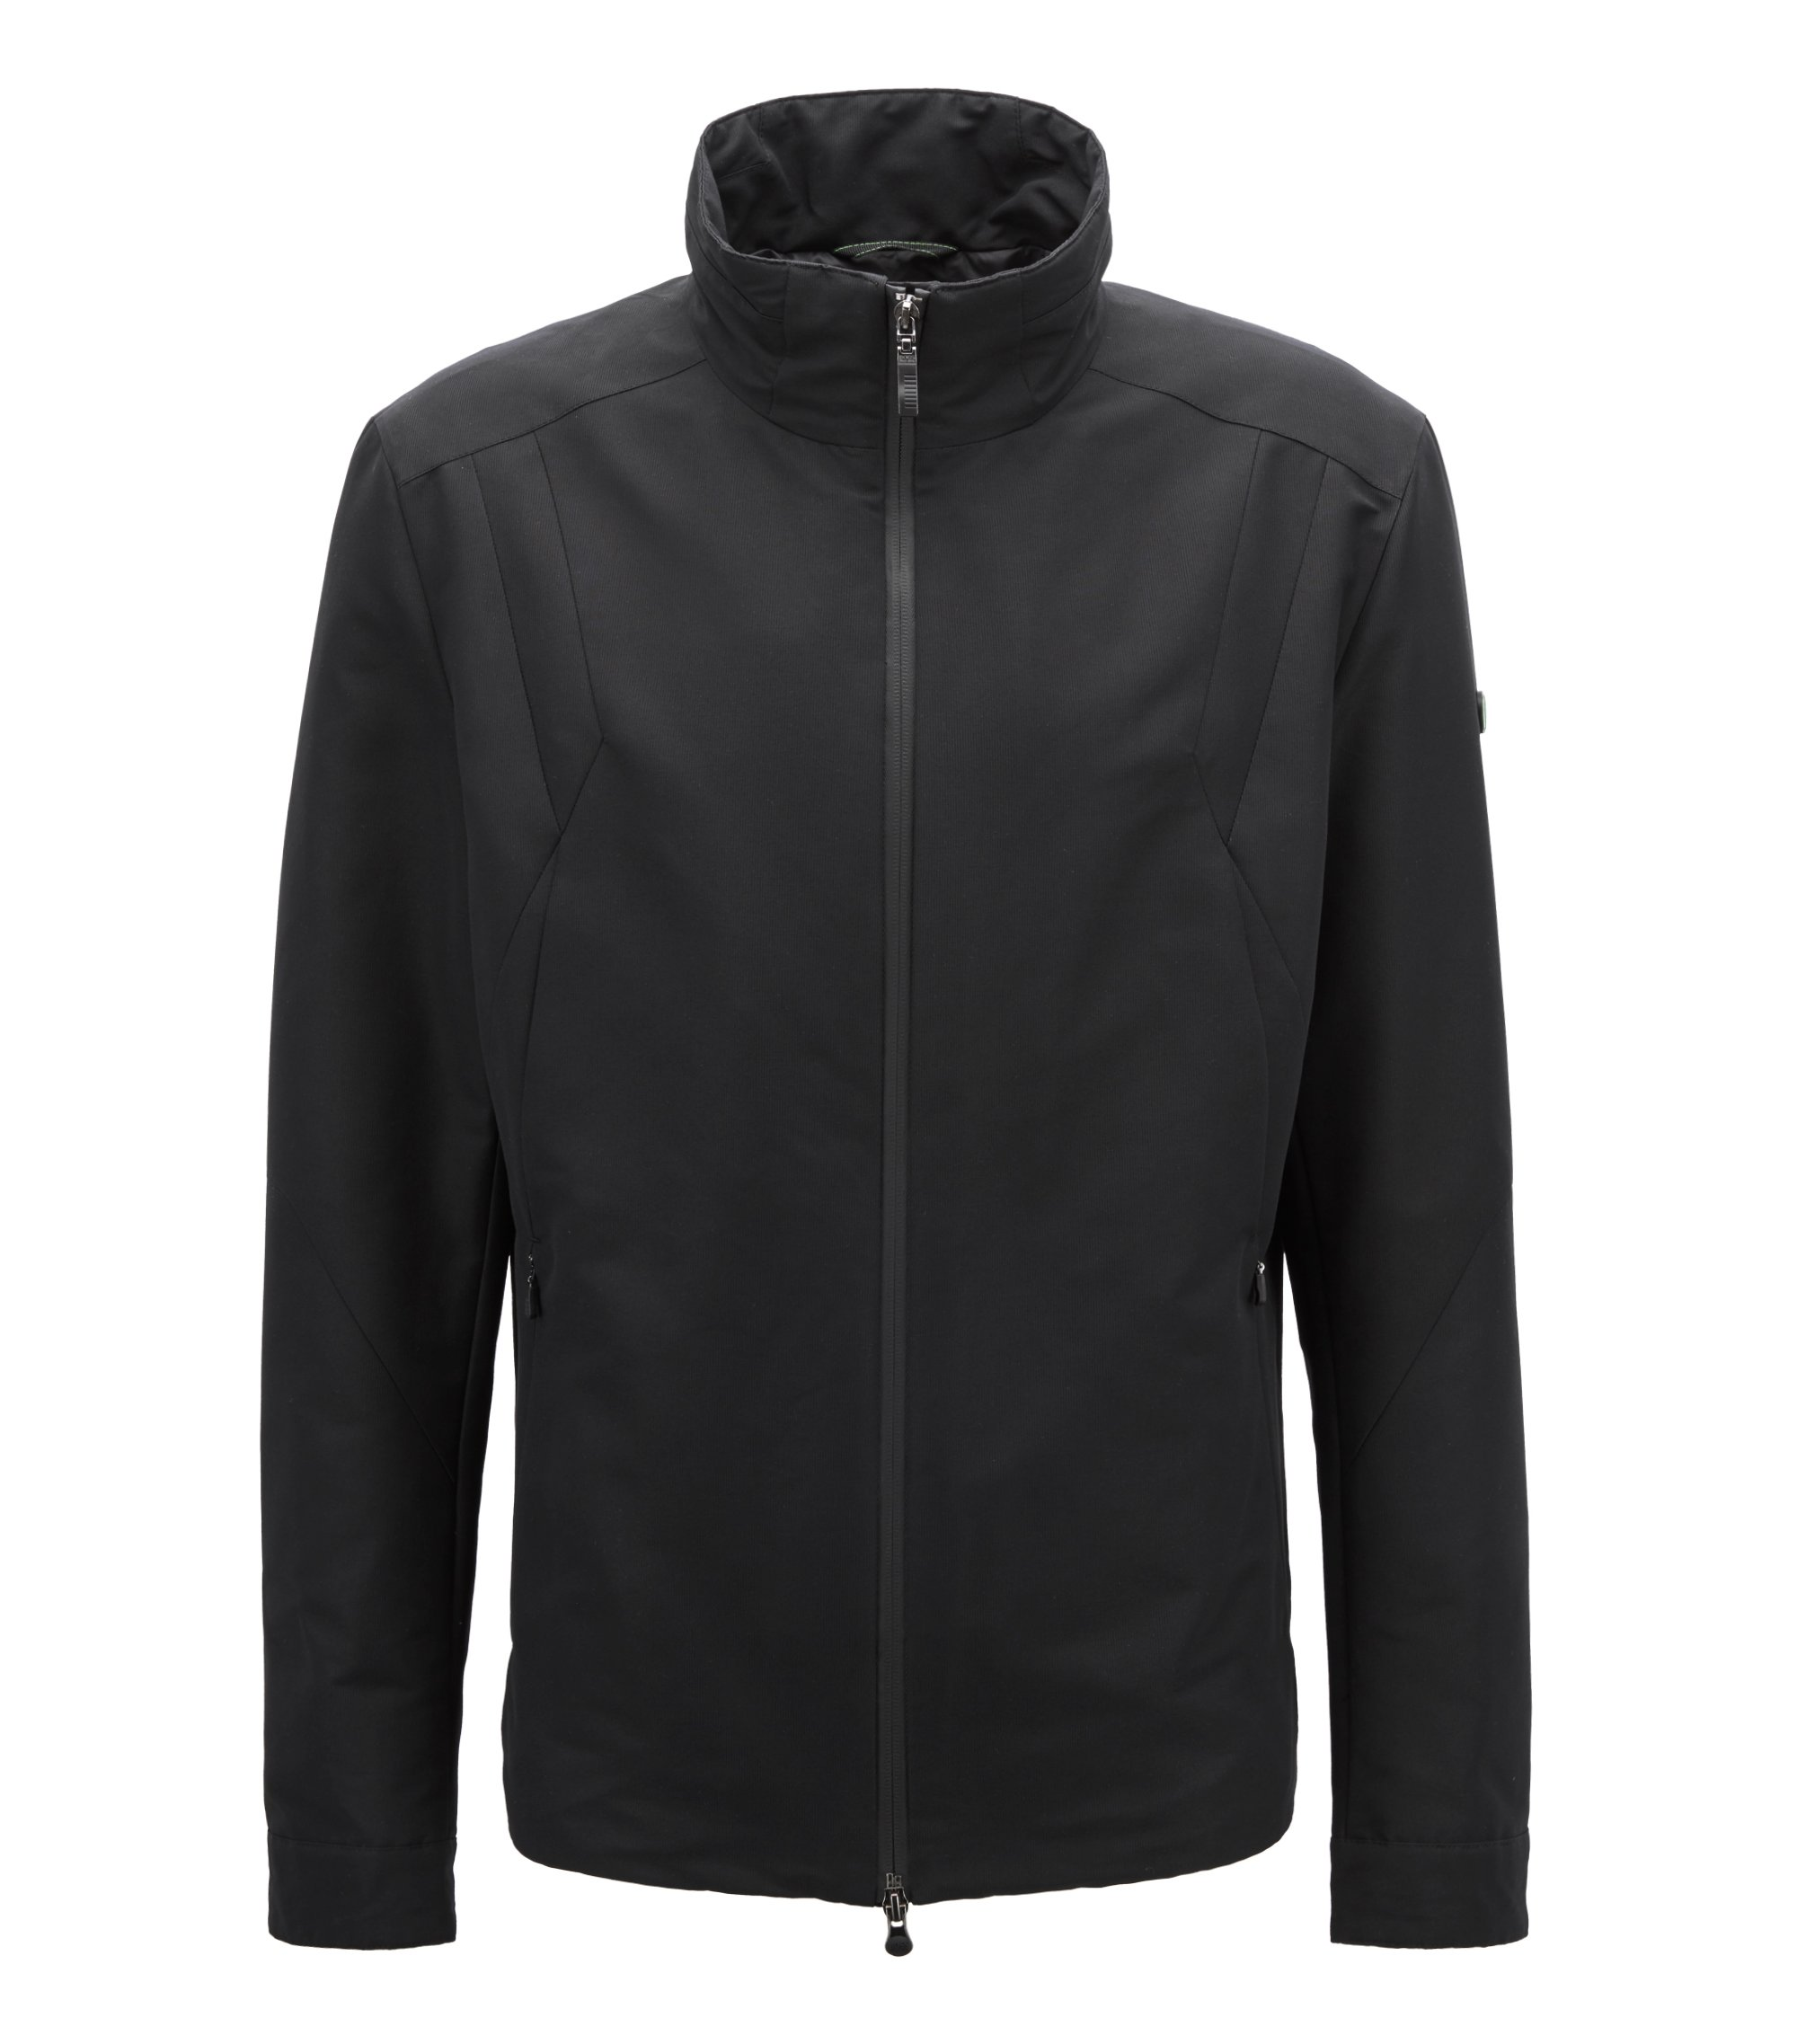 Link2 jacket with electromagnetic-wave blocker, Black